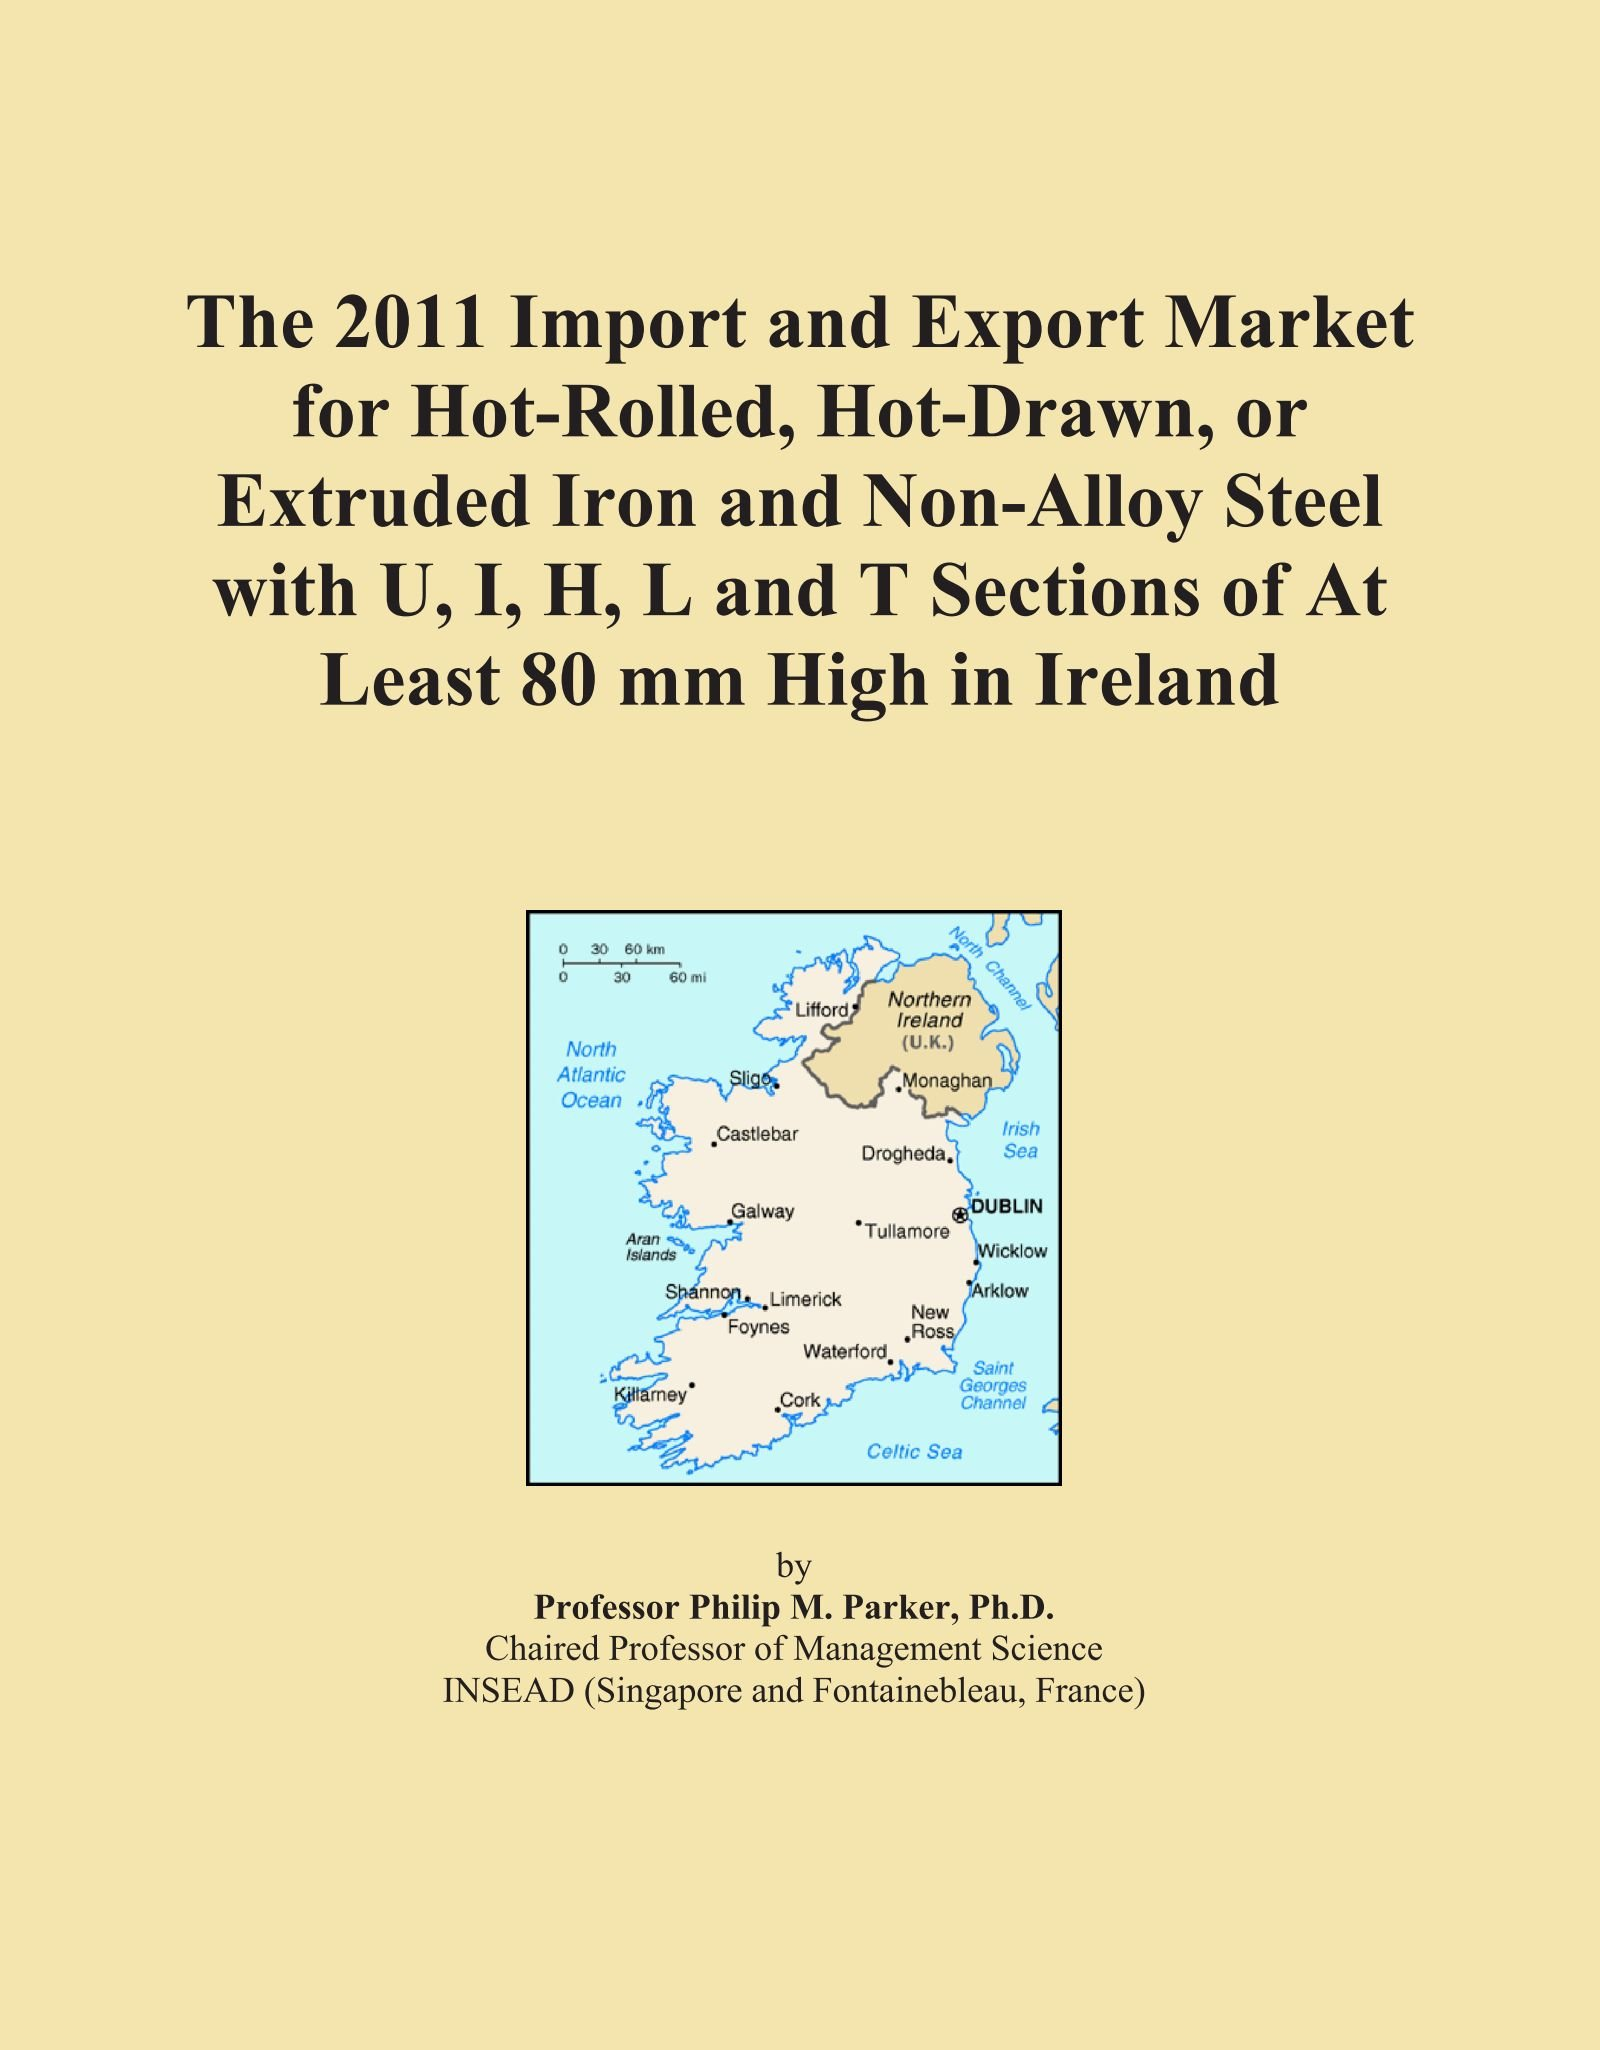 Download The 2011 Import and Export Market for Hot-Rolled, Hot-Drawn, or Extruded Iron and Non-Alloy Steel with U, I, H, L and T Sections of At Least 80 mm High in Ireland ebook